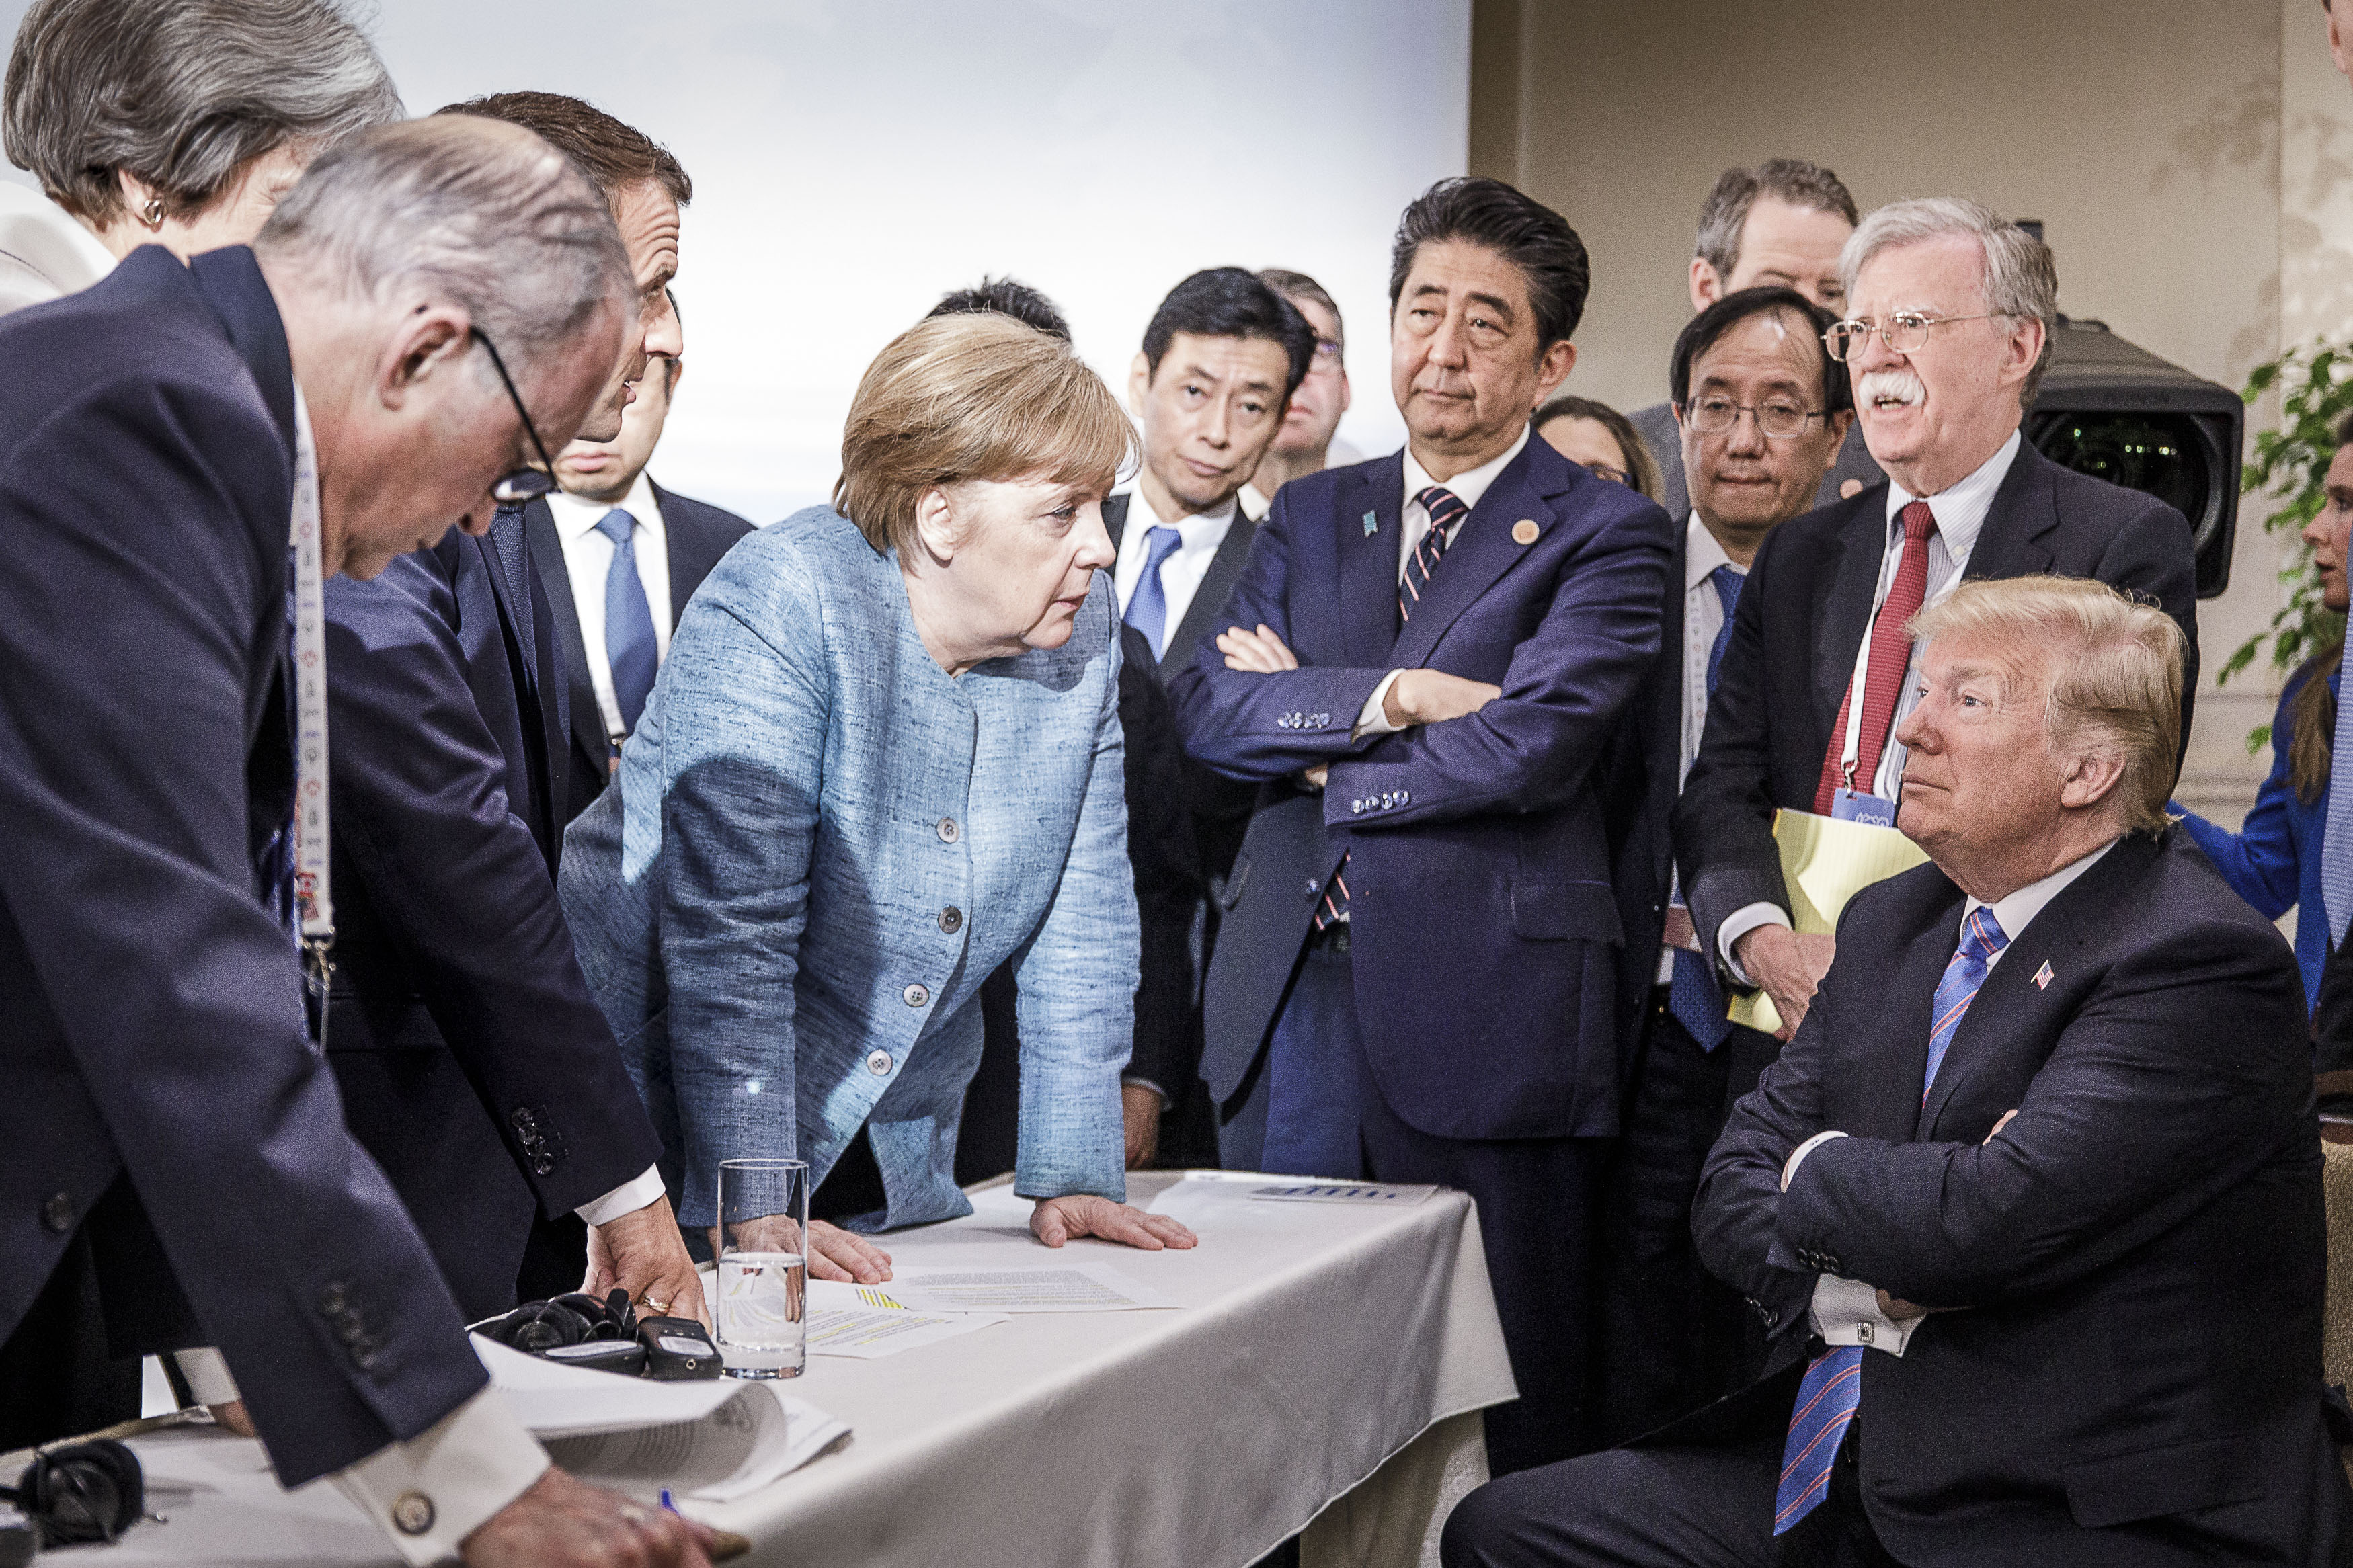 Angela Merkel and other world leaders try in vain to change the mind of Donald Trump at G7 summit in June (Jesco Denzel /Bundesregierung via Getty Images)